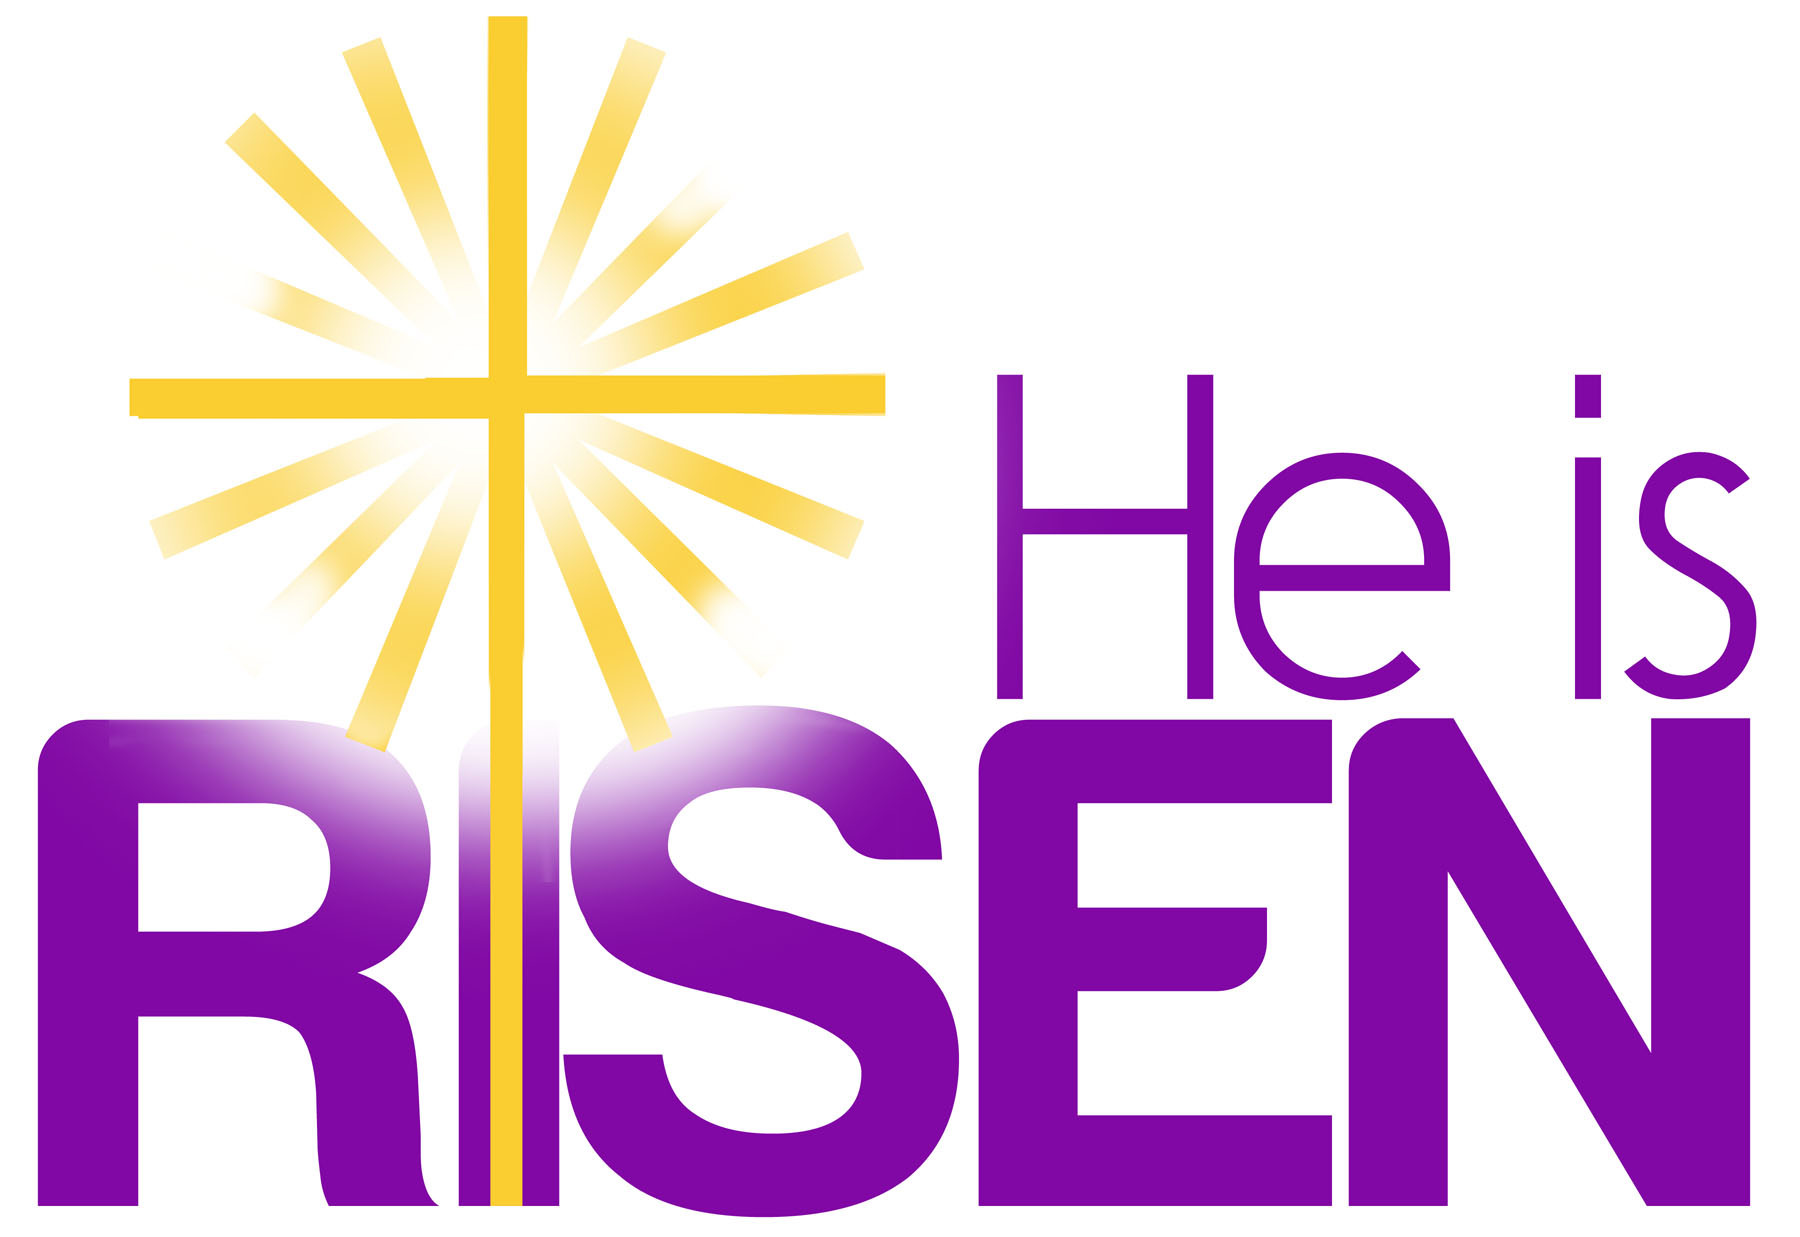 easter sunday png transparent easter sunday png images pluspng rh pluspng com free happy easter clipart religious free clip art happy easter religious